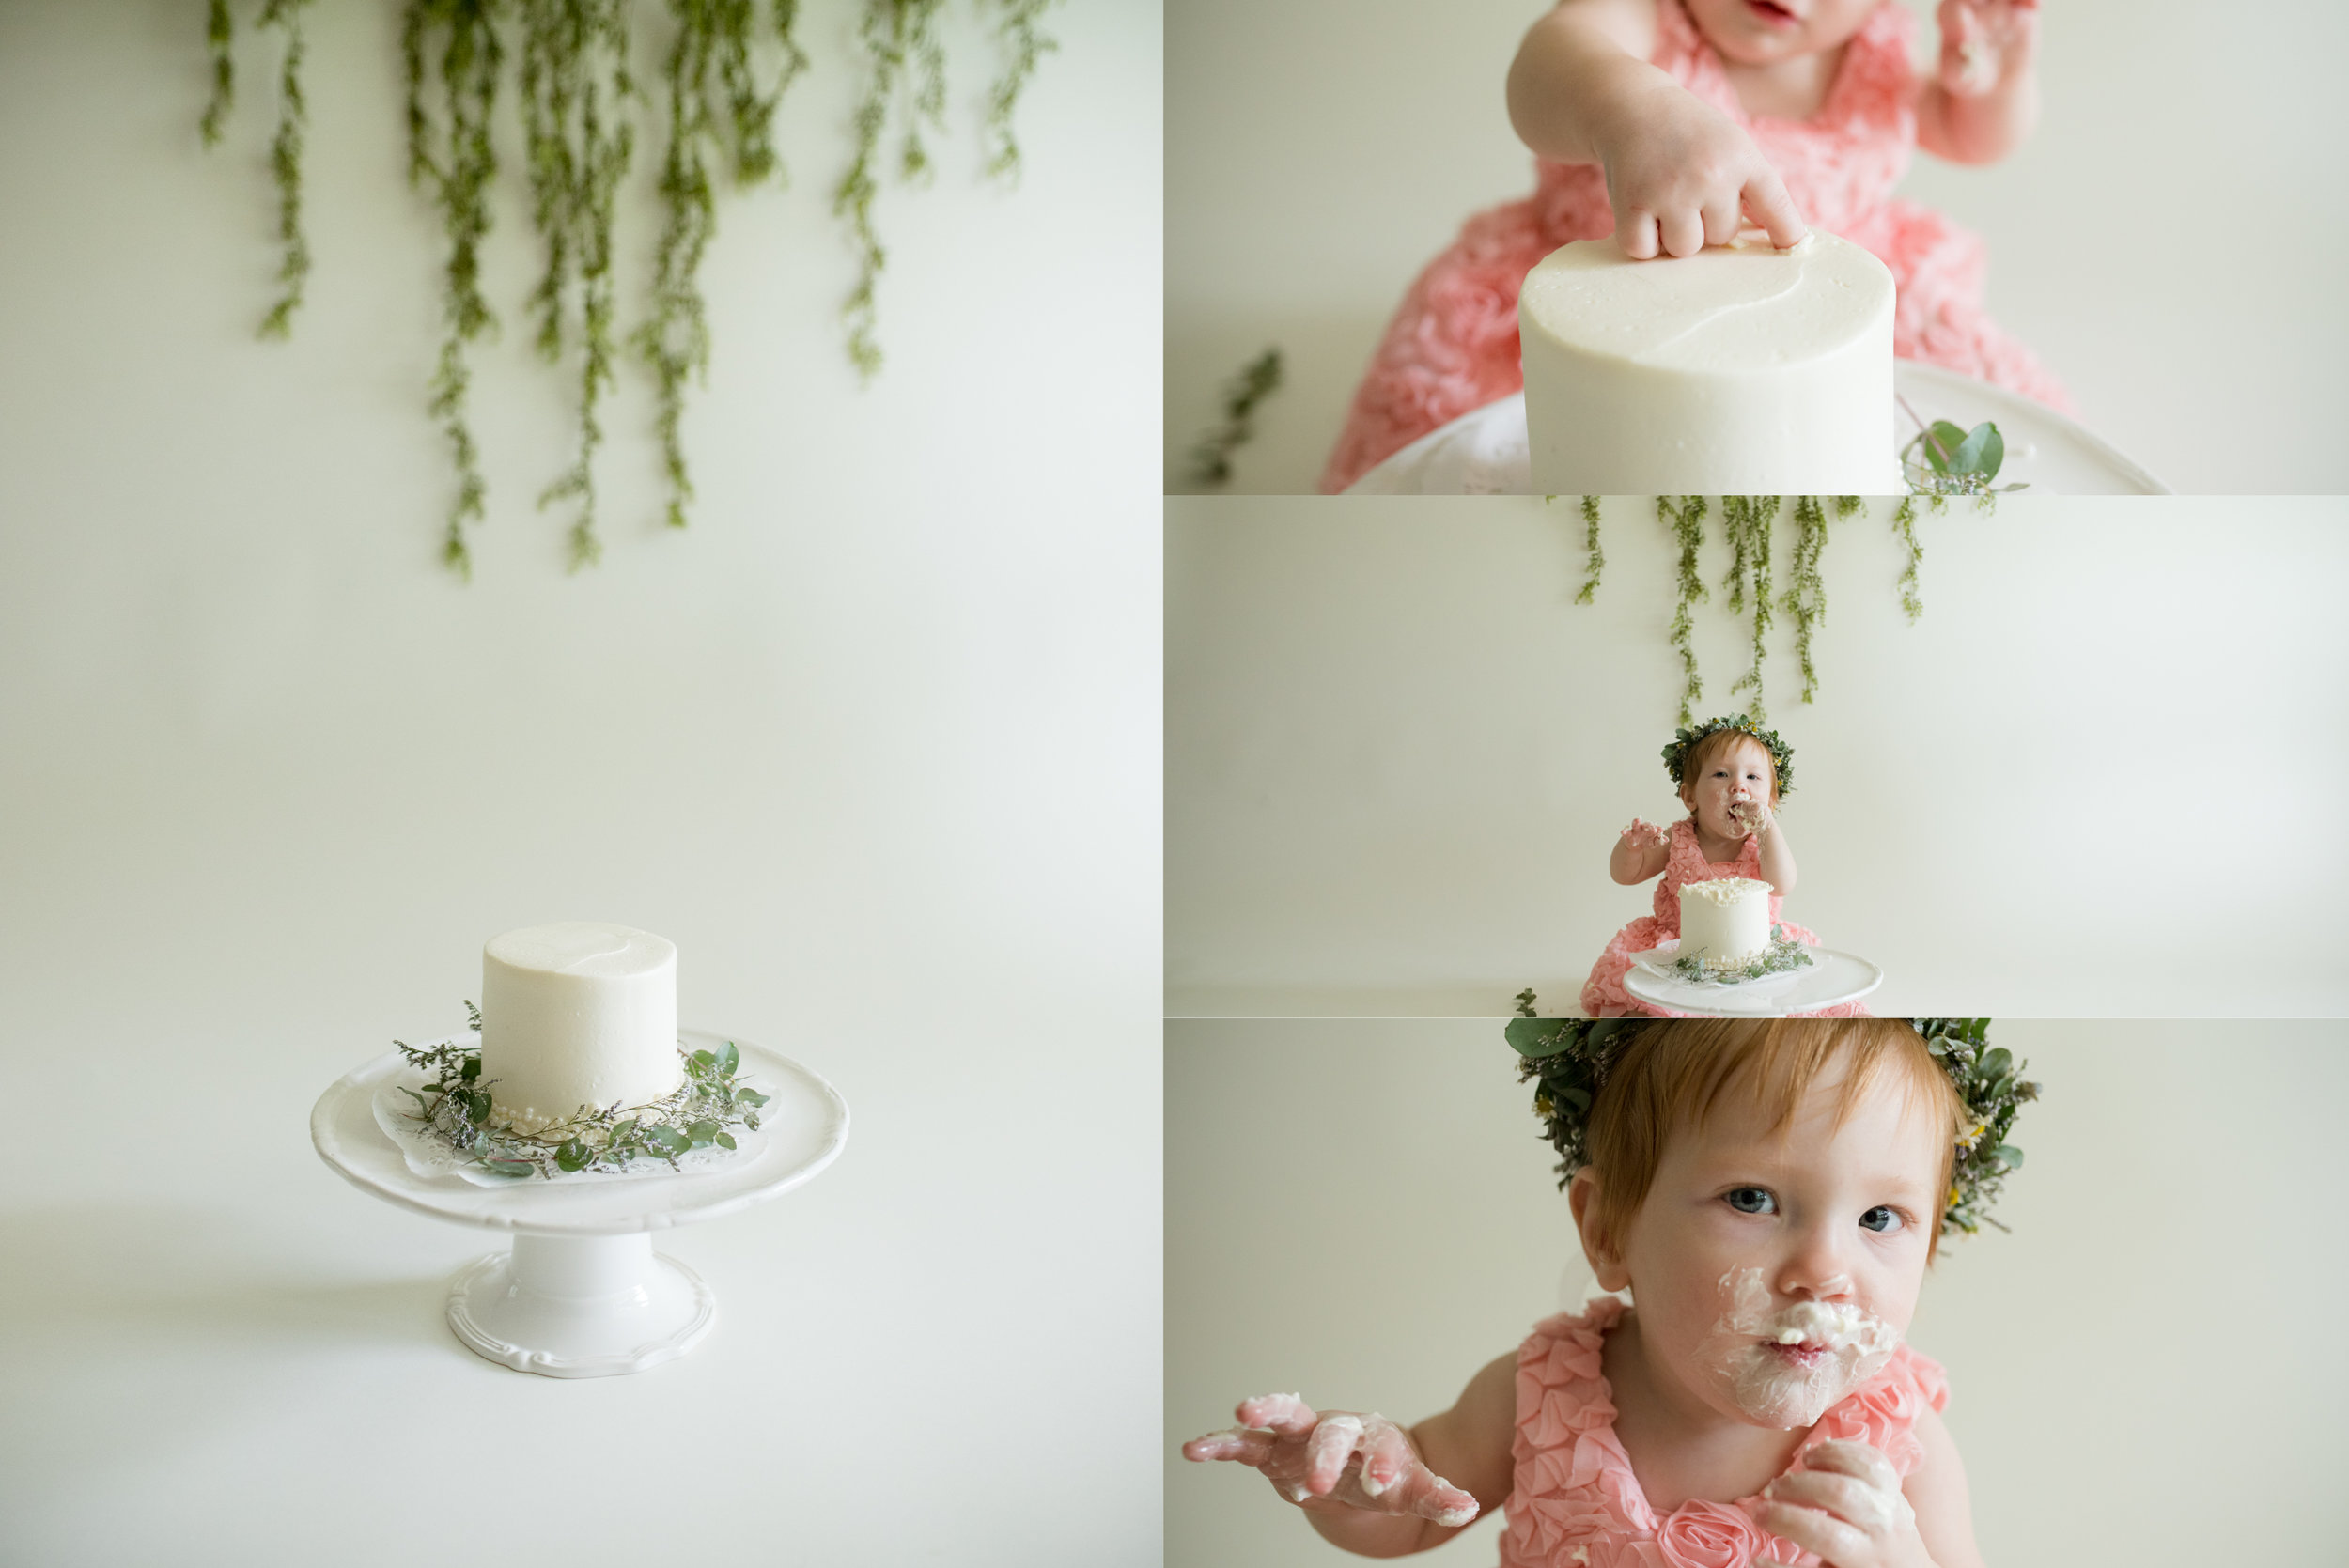 Off-white cake smash photo session for baby girl in Iowa.